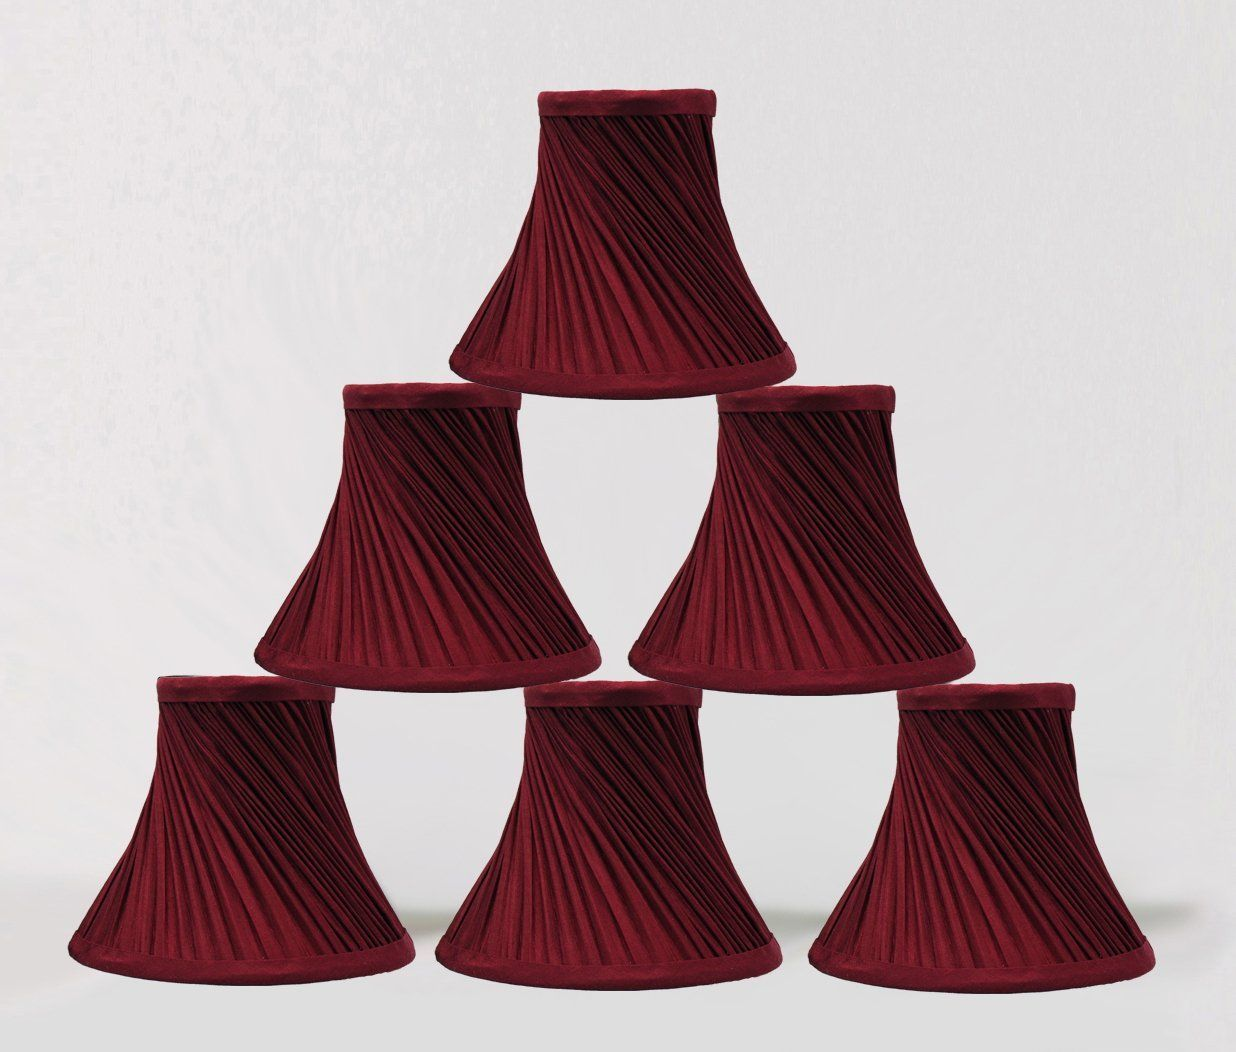 Urbanest 1101004c Set Of 6 Swirl Pleated Chandelier Lamp Shades 6 Inch Bell Clip On Burgundy Click I Lamp Shades Chandelier Lamp Shades Light Accessories